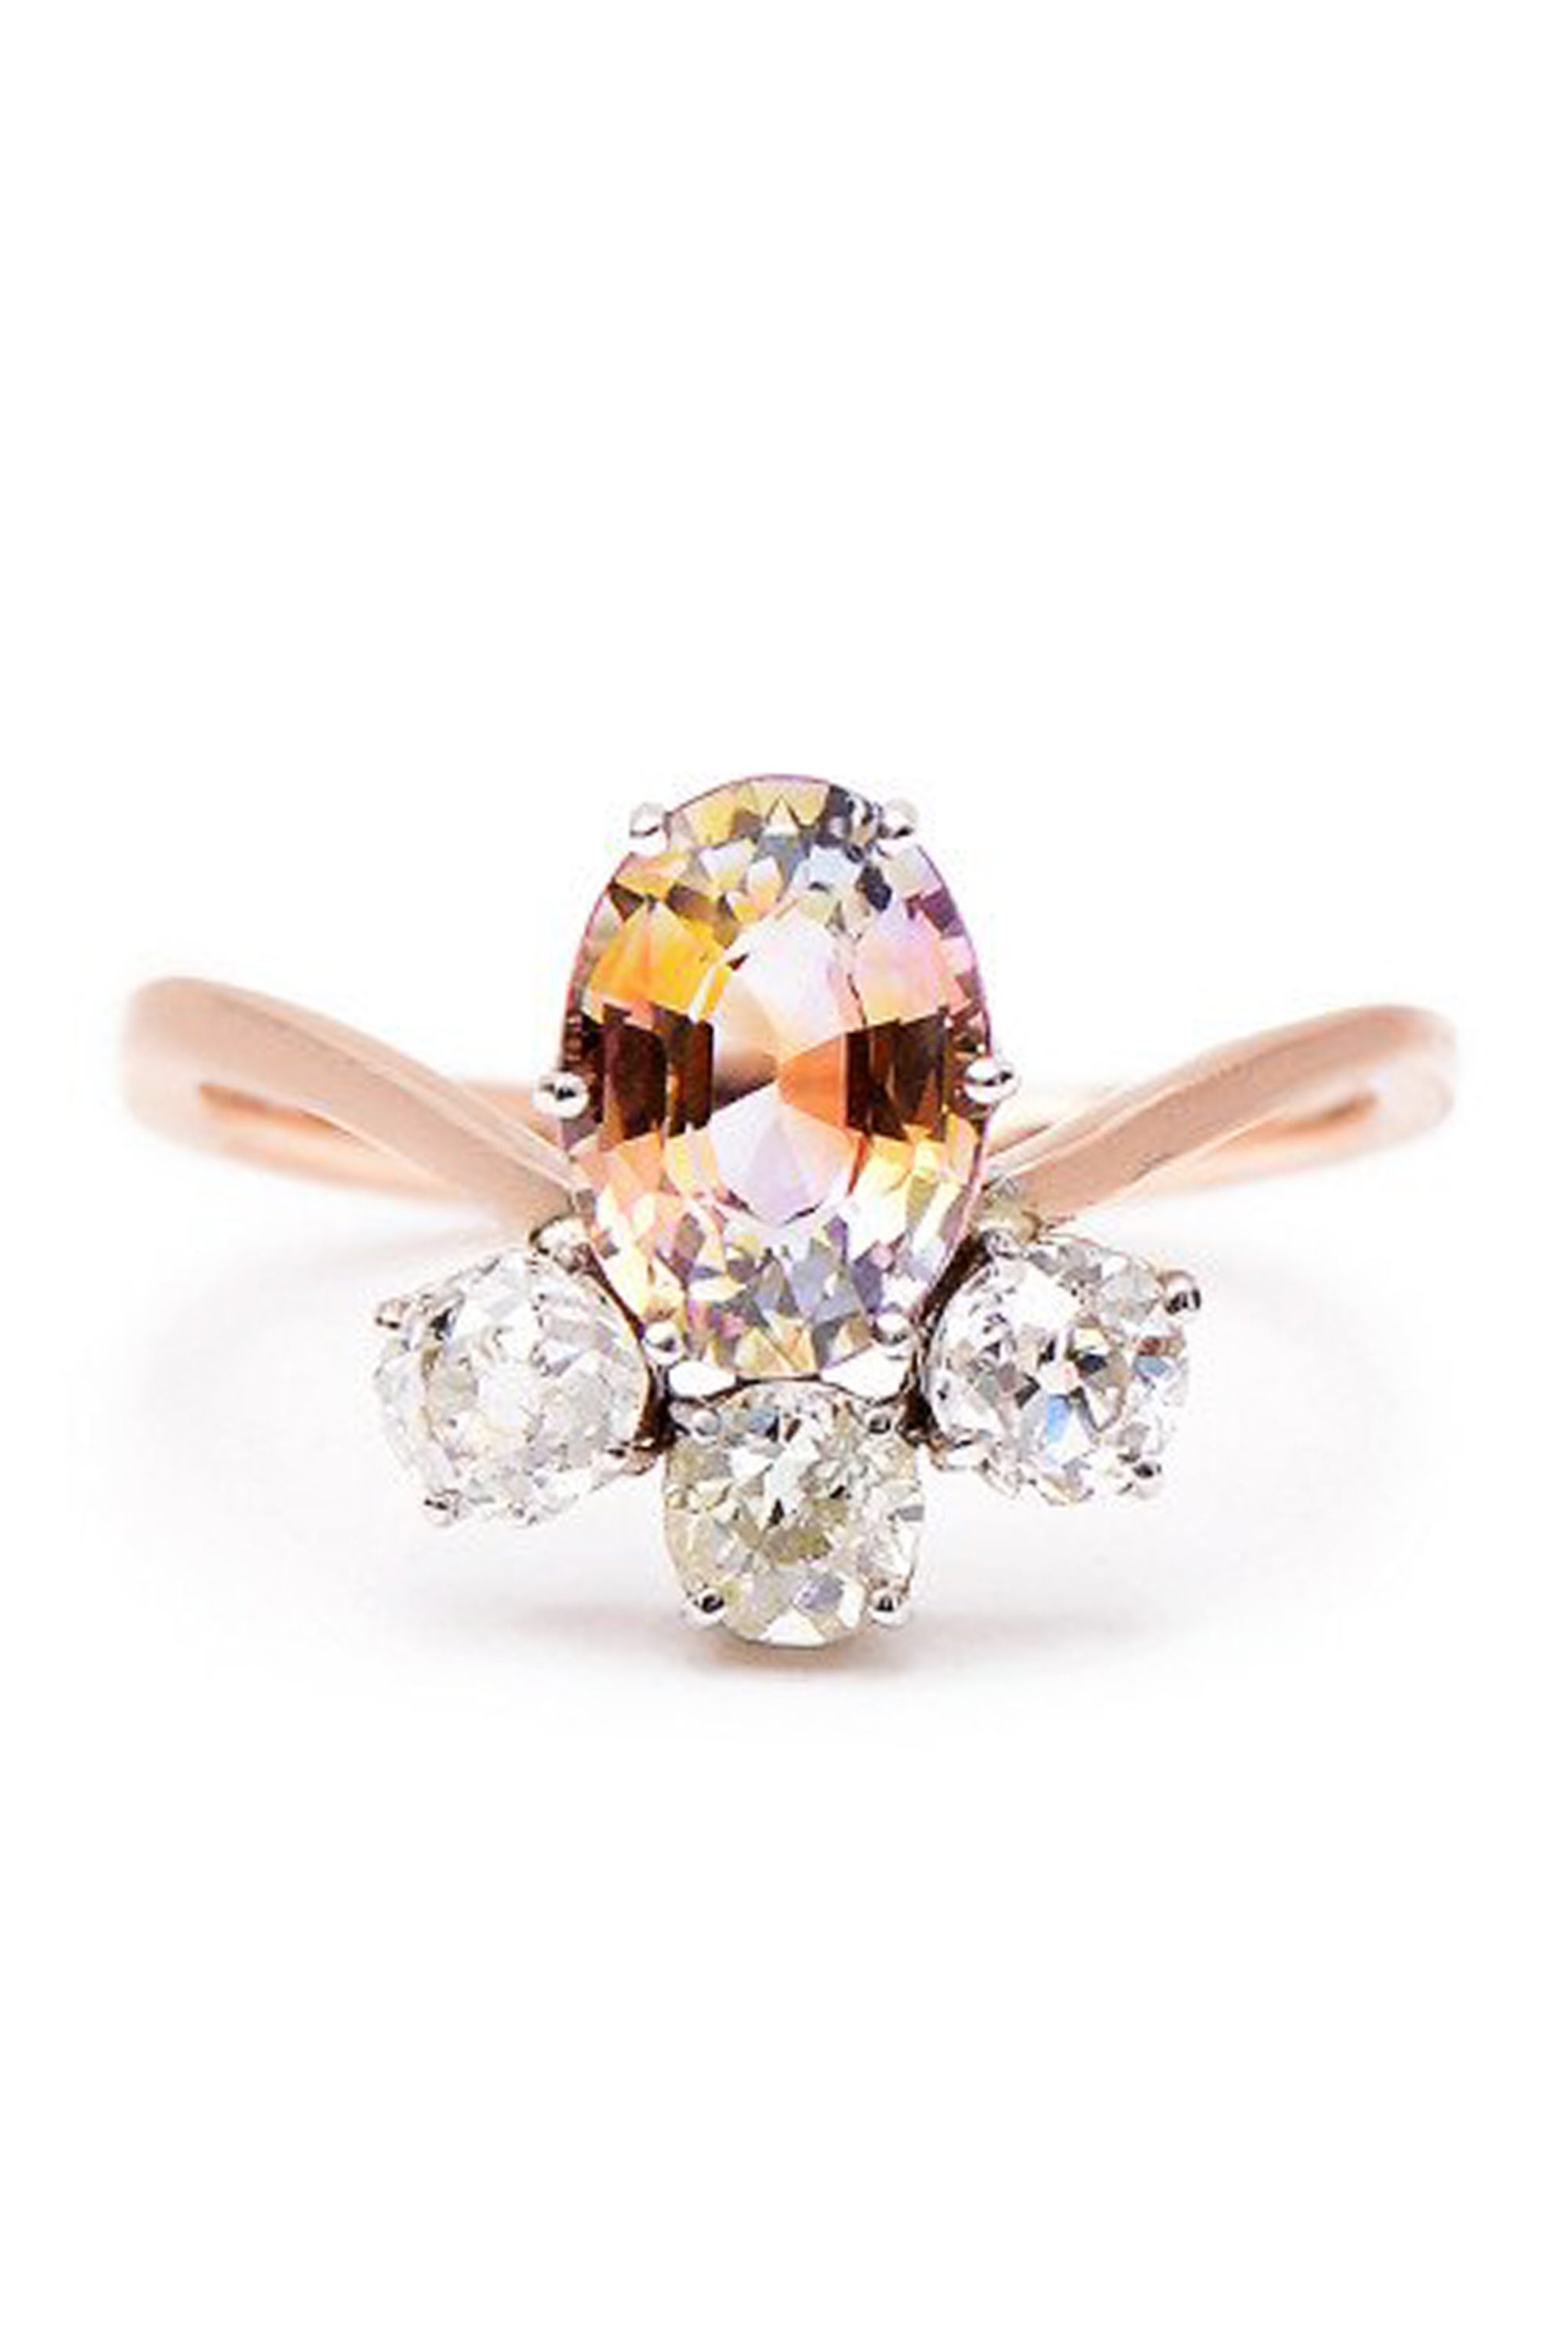 by trunk teardrop show jamie ring oregon engagement sustone product horizontal rings joseph newtwist sunstone